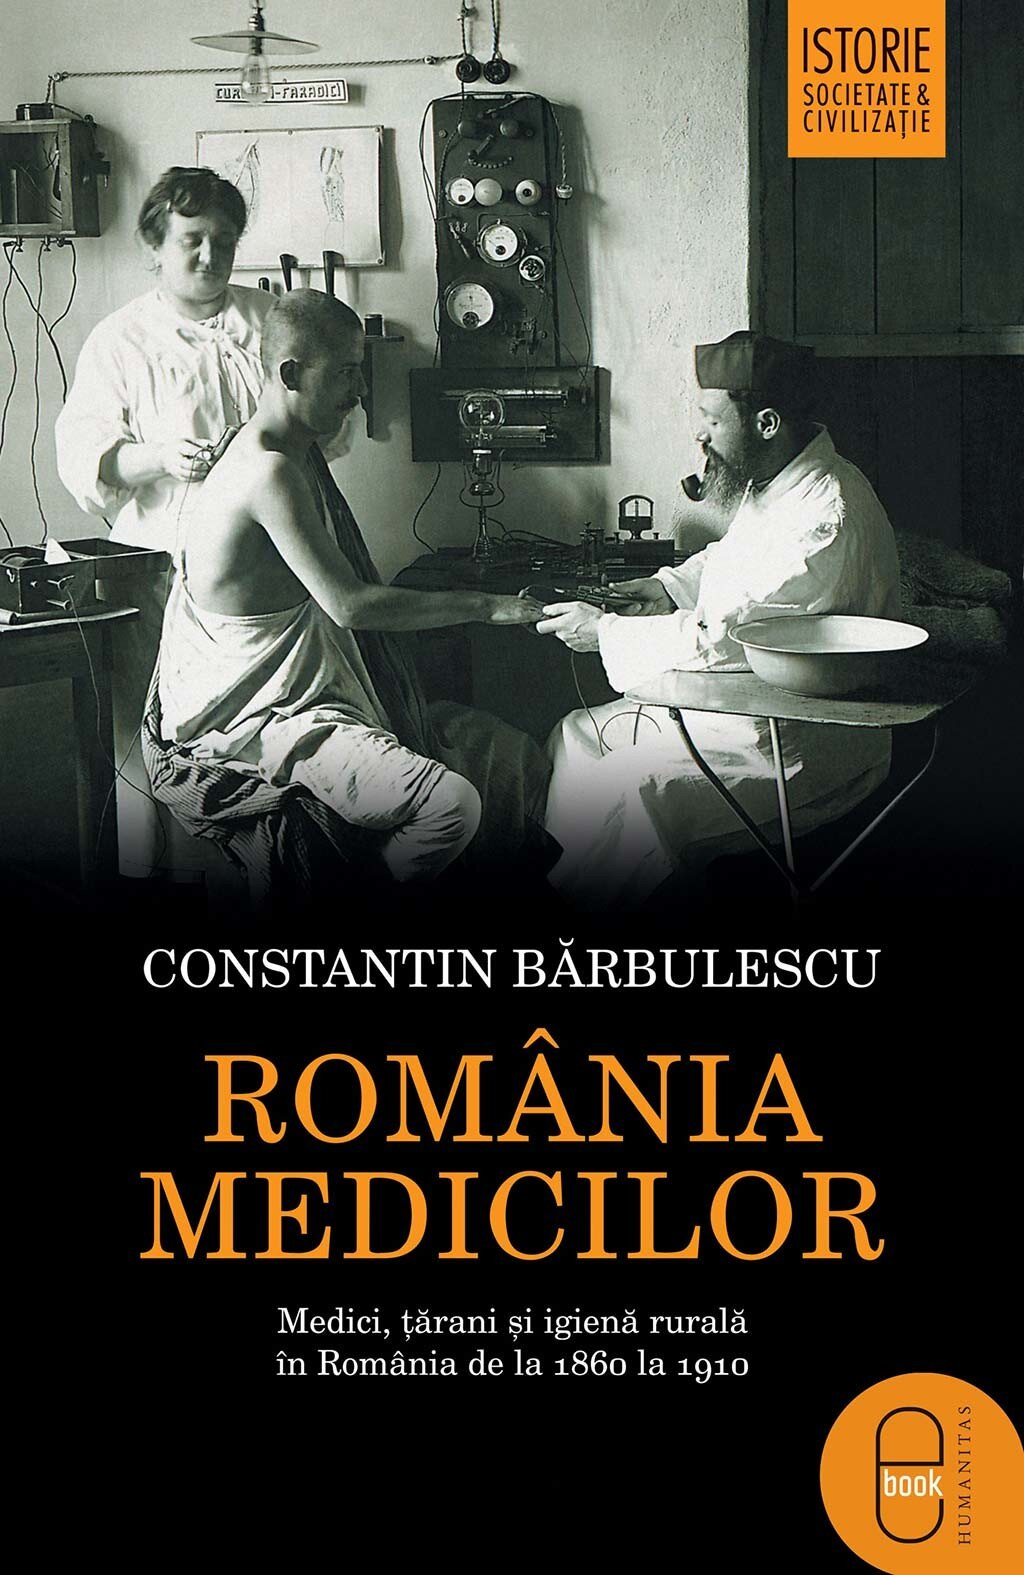 Romania medicilor. Medici, tarani si igiena rurala in Romania de la 1860 la 1910 (eBook)